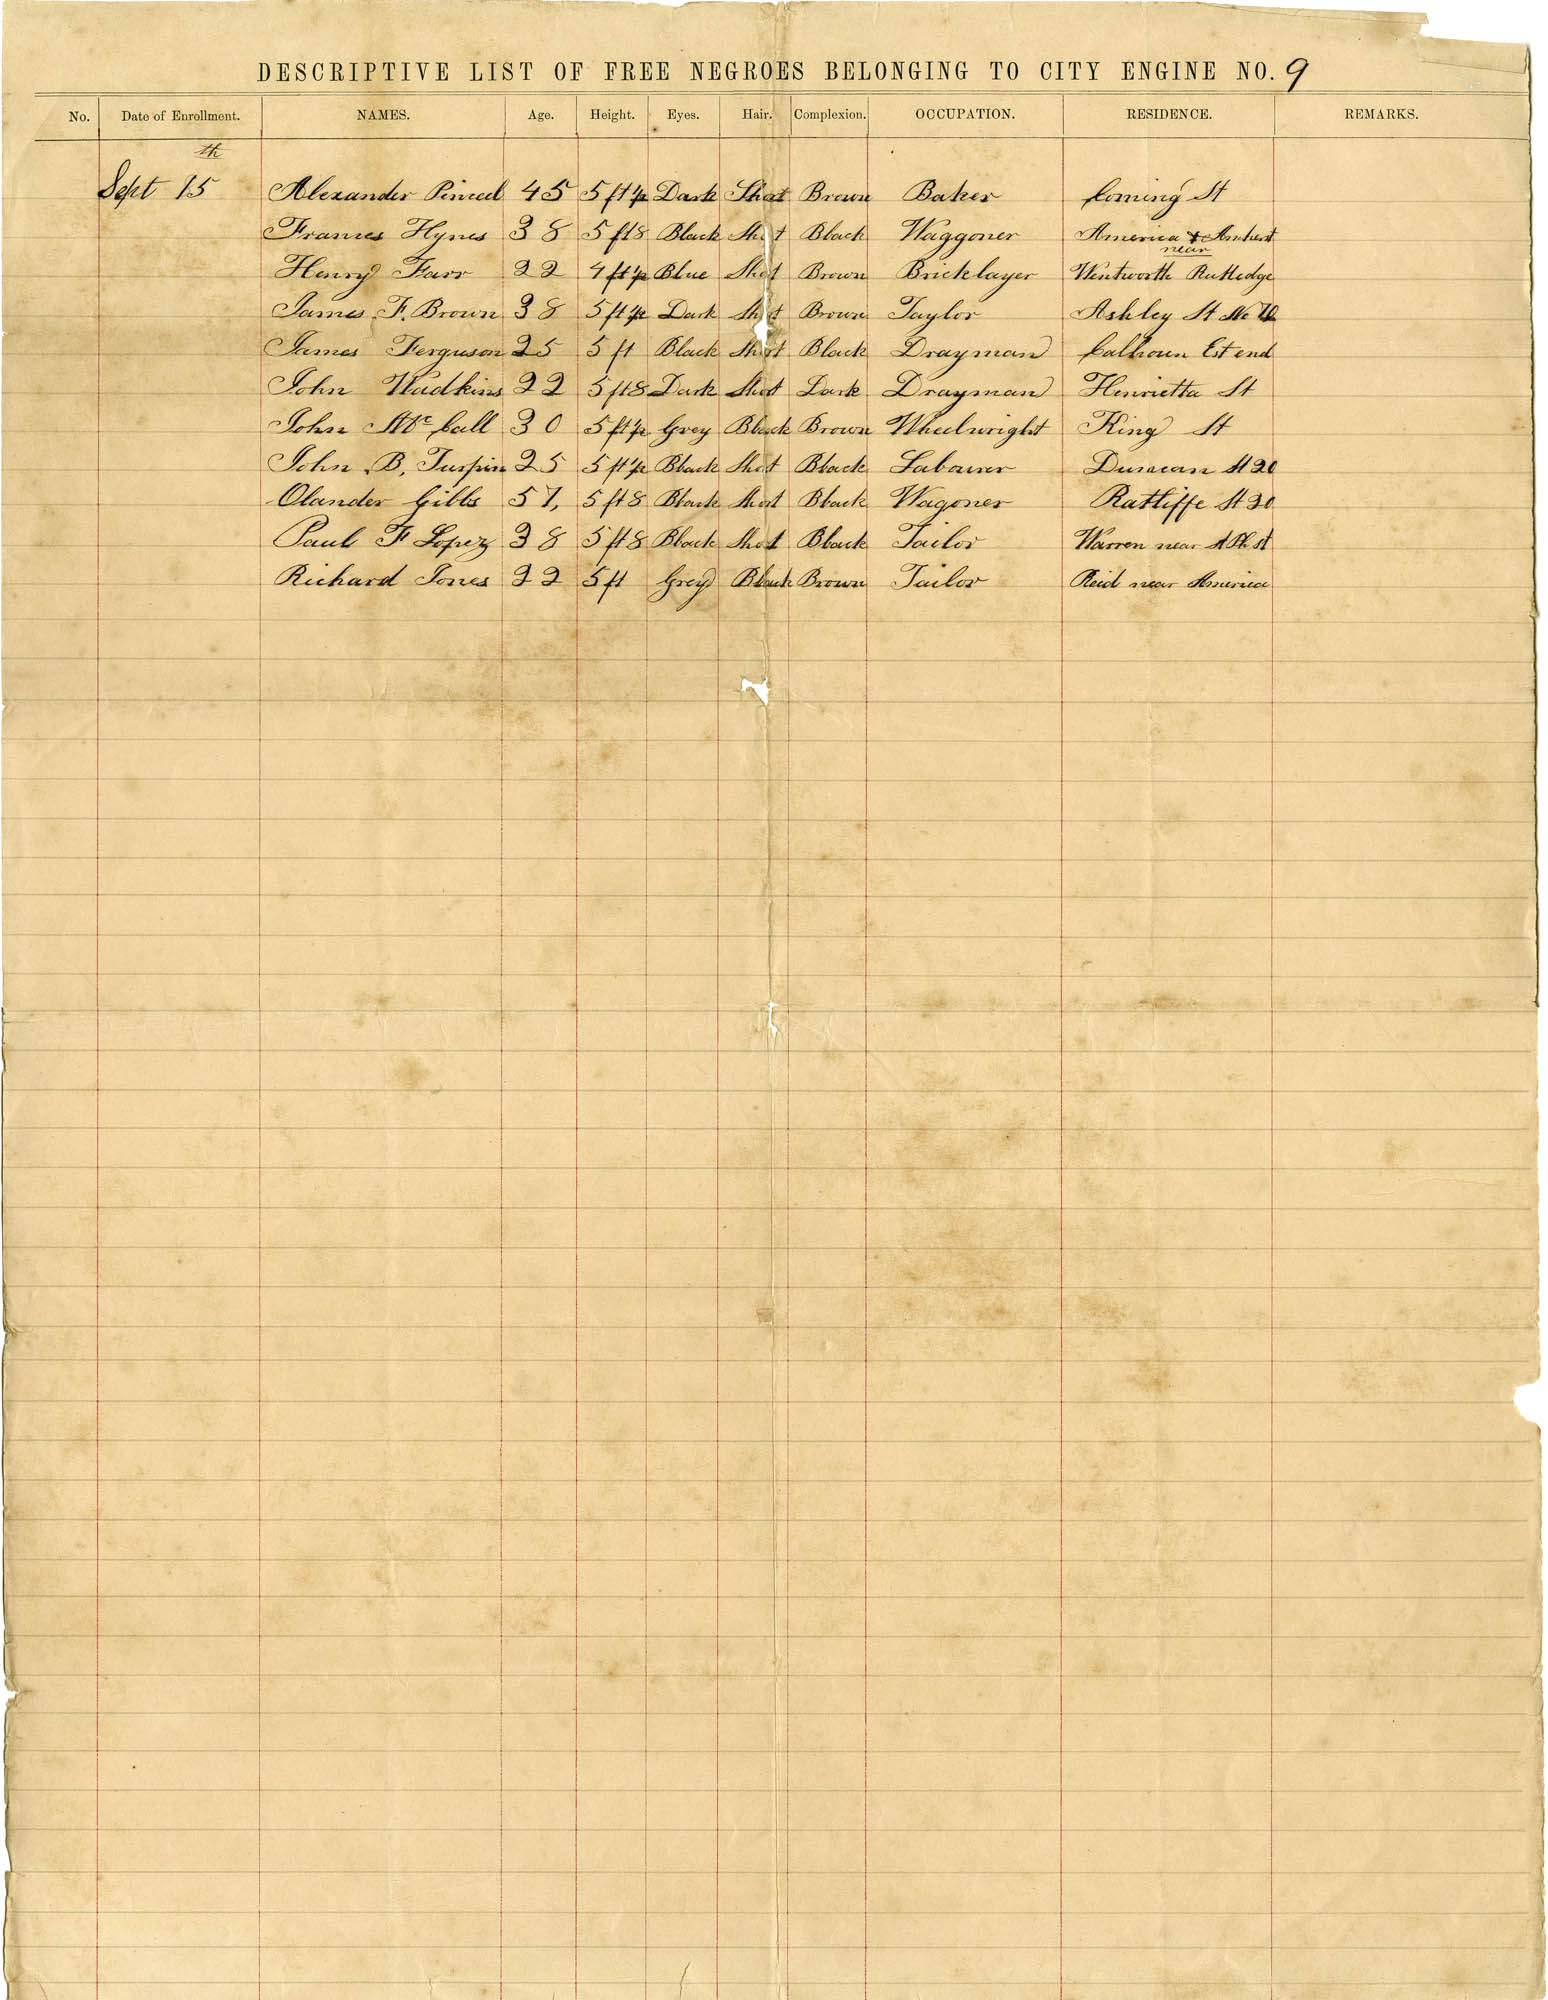 Descriptive List of Free Negroes Belonging to City Engine No. 9 [Copy 2]